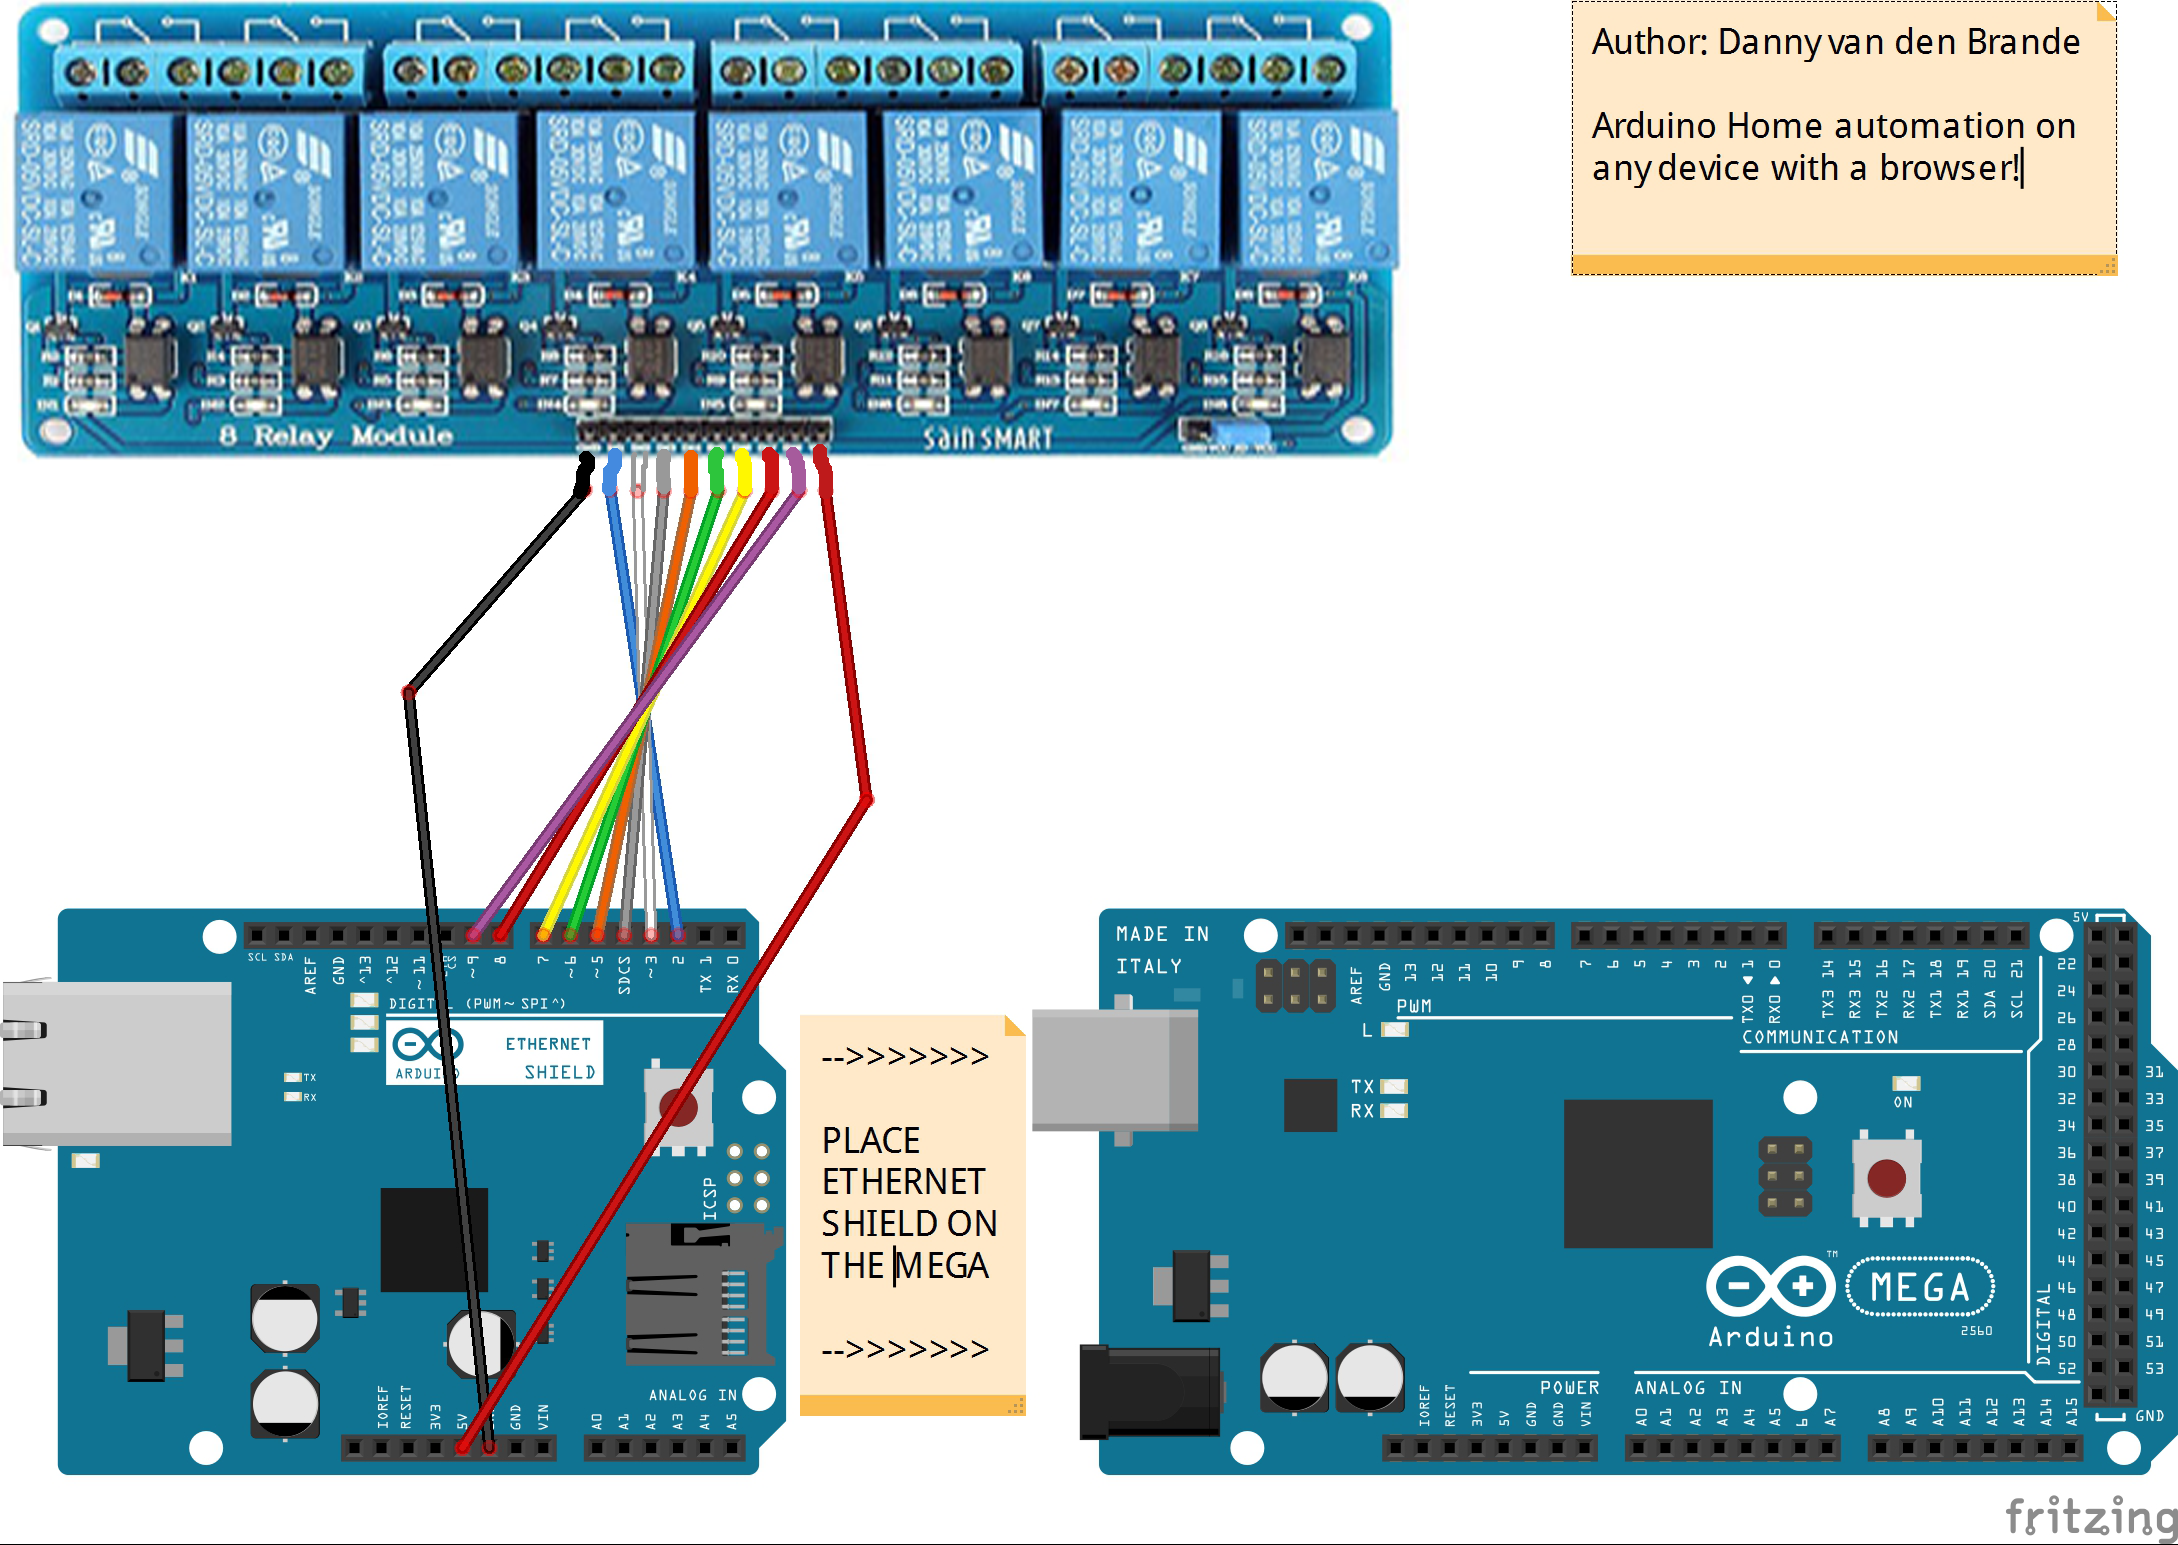 The Arduino Mega 2560 is a microcontroller board